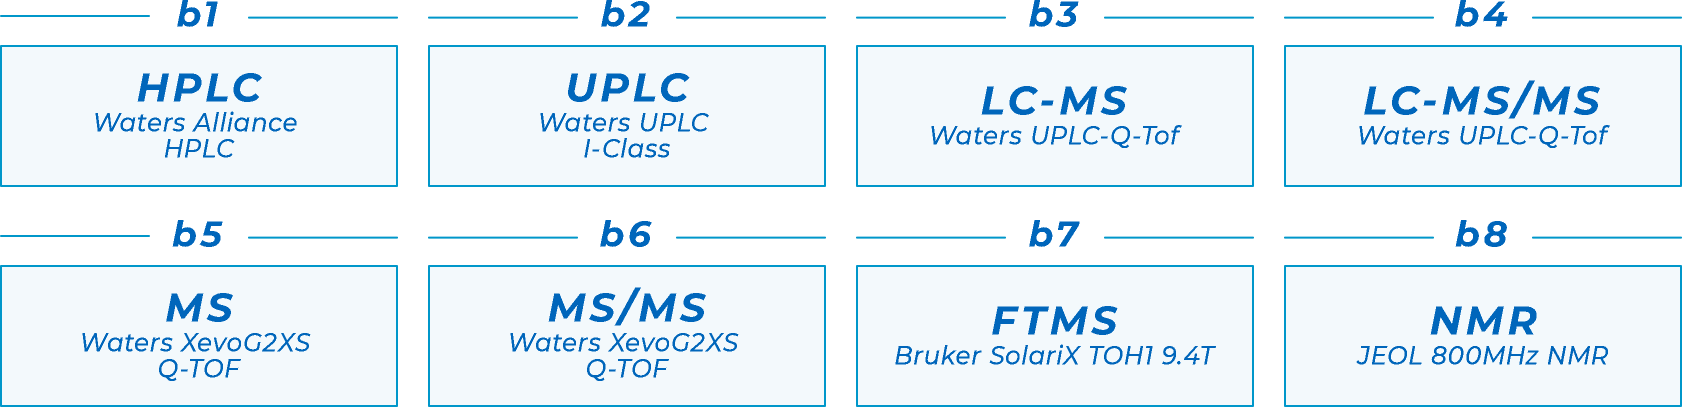 b1.HPLC Waters Alliance HPLC b2.UPLC Waters UPLC I-Class b3.LC-MS Waters UPLC-Q-Tof b4.LC-MS/MS Waters UPLC-Q-Tof b5.MS Waters XevoG2XS Q-TOF b6.MS/MS Waters XevoG2XS Q-TOF b7.FTMS Bruker SolariX TOH1 9.4T b8.NMR JEOL 800MHz NMR